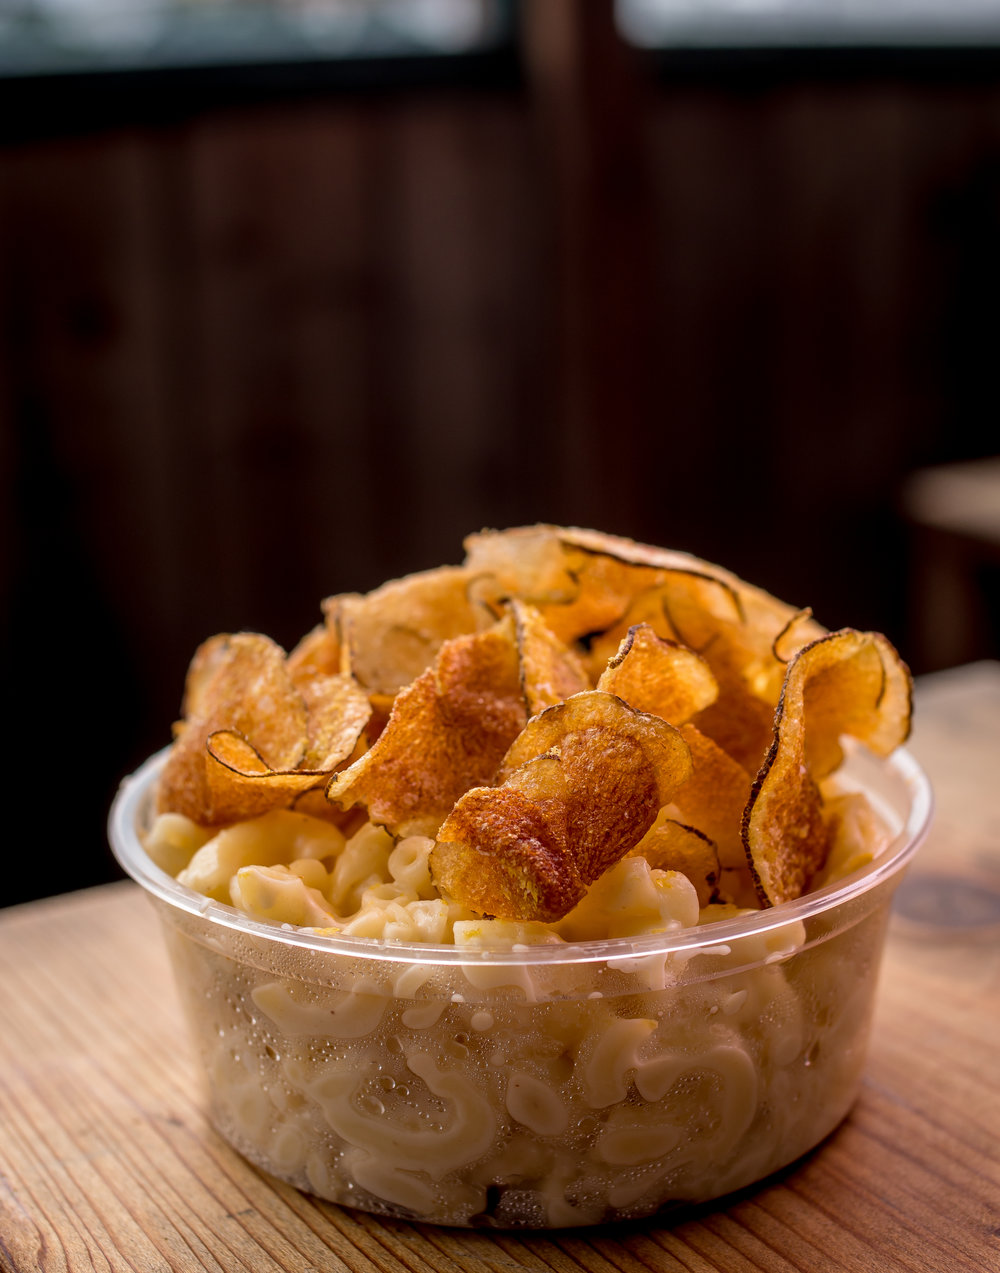 Mac & Cheese with Chips